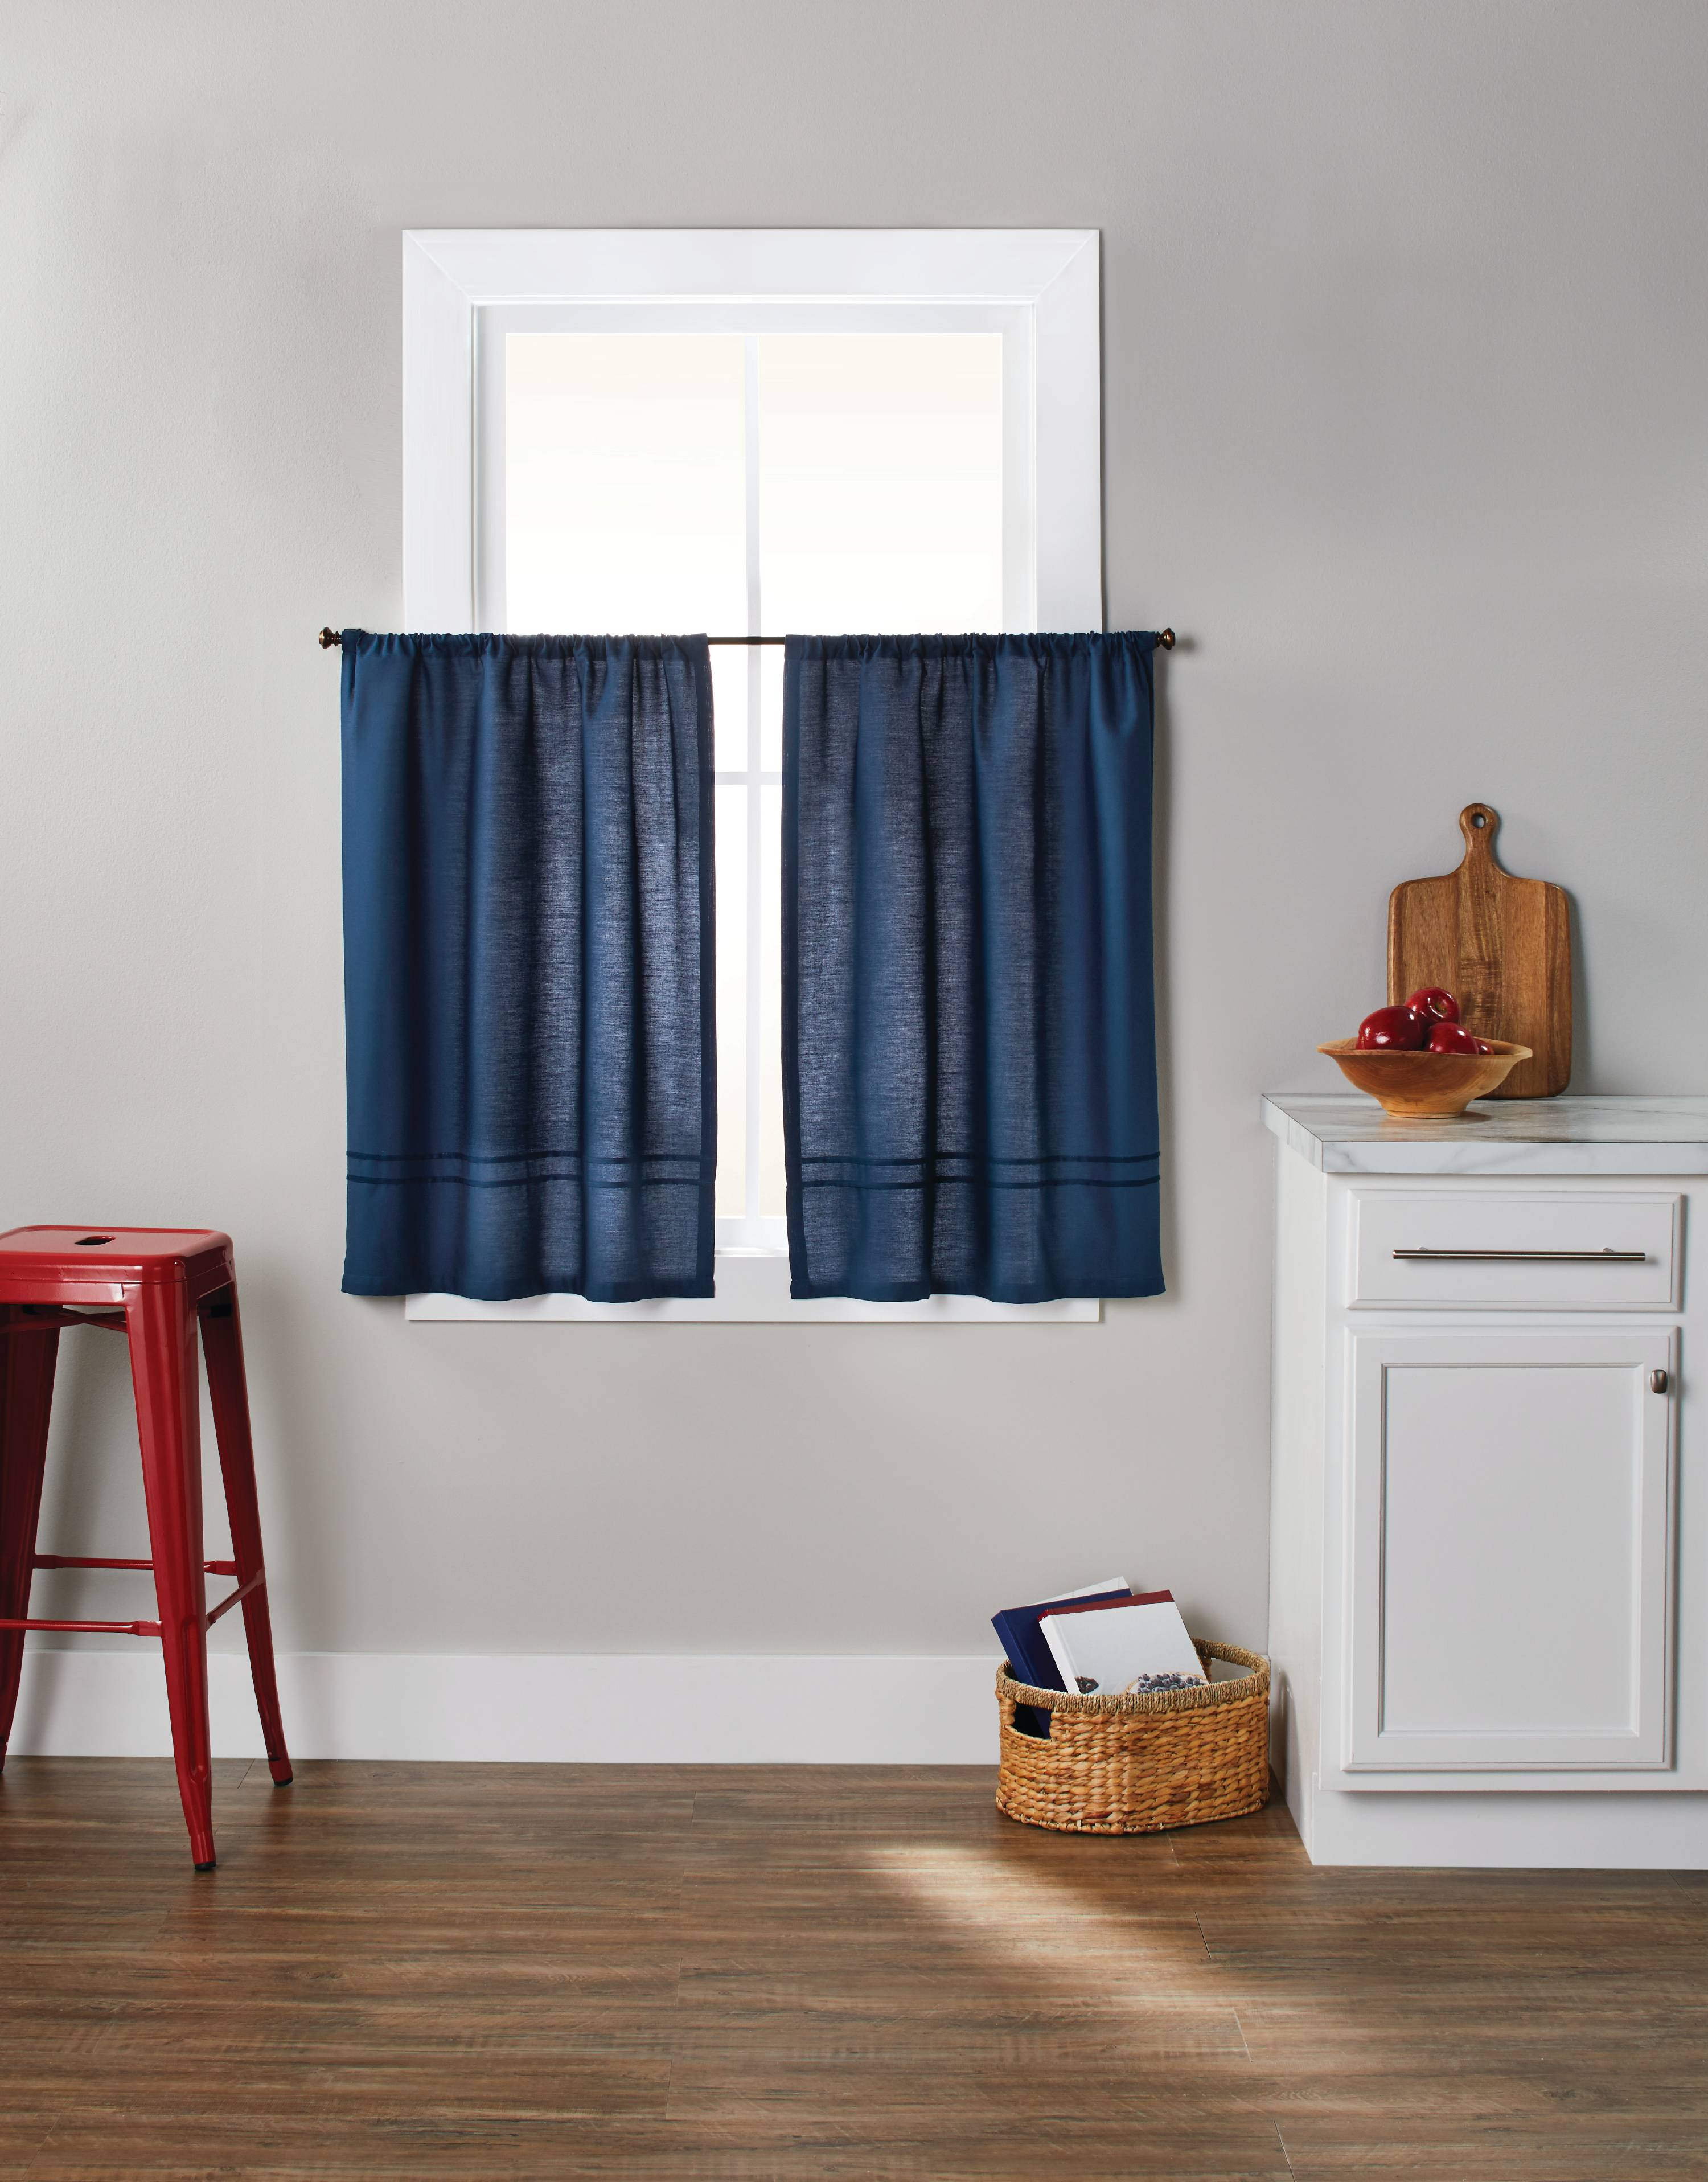 Better Homes Gardens Checks N Solids 3 Piece Kitchen Curtain Set Walmart Com Walmart Com